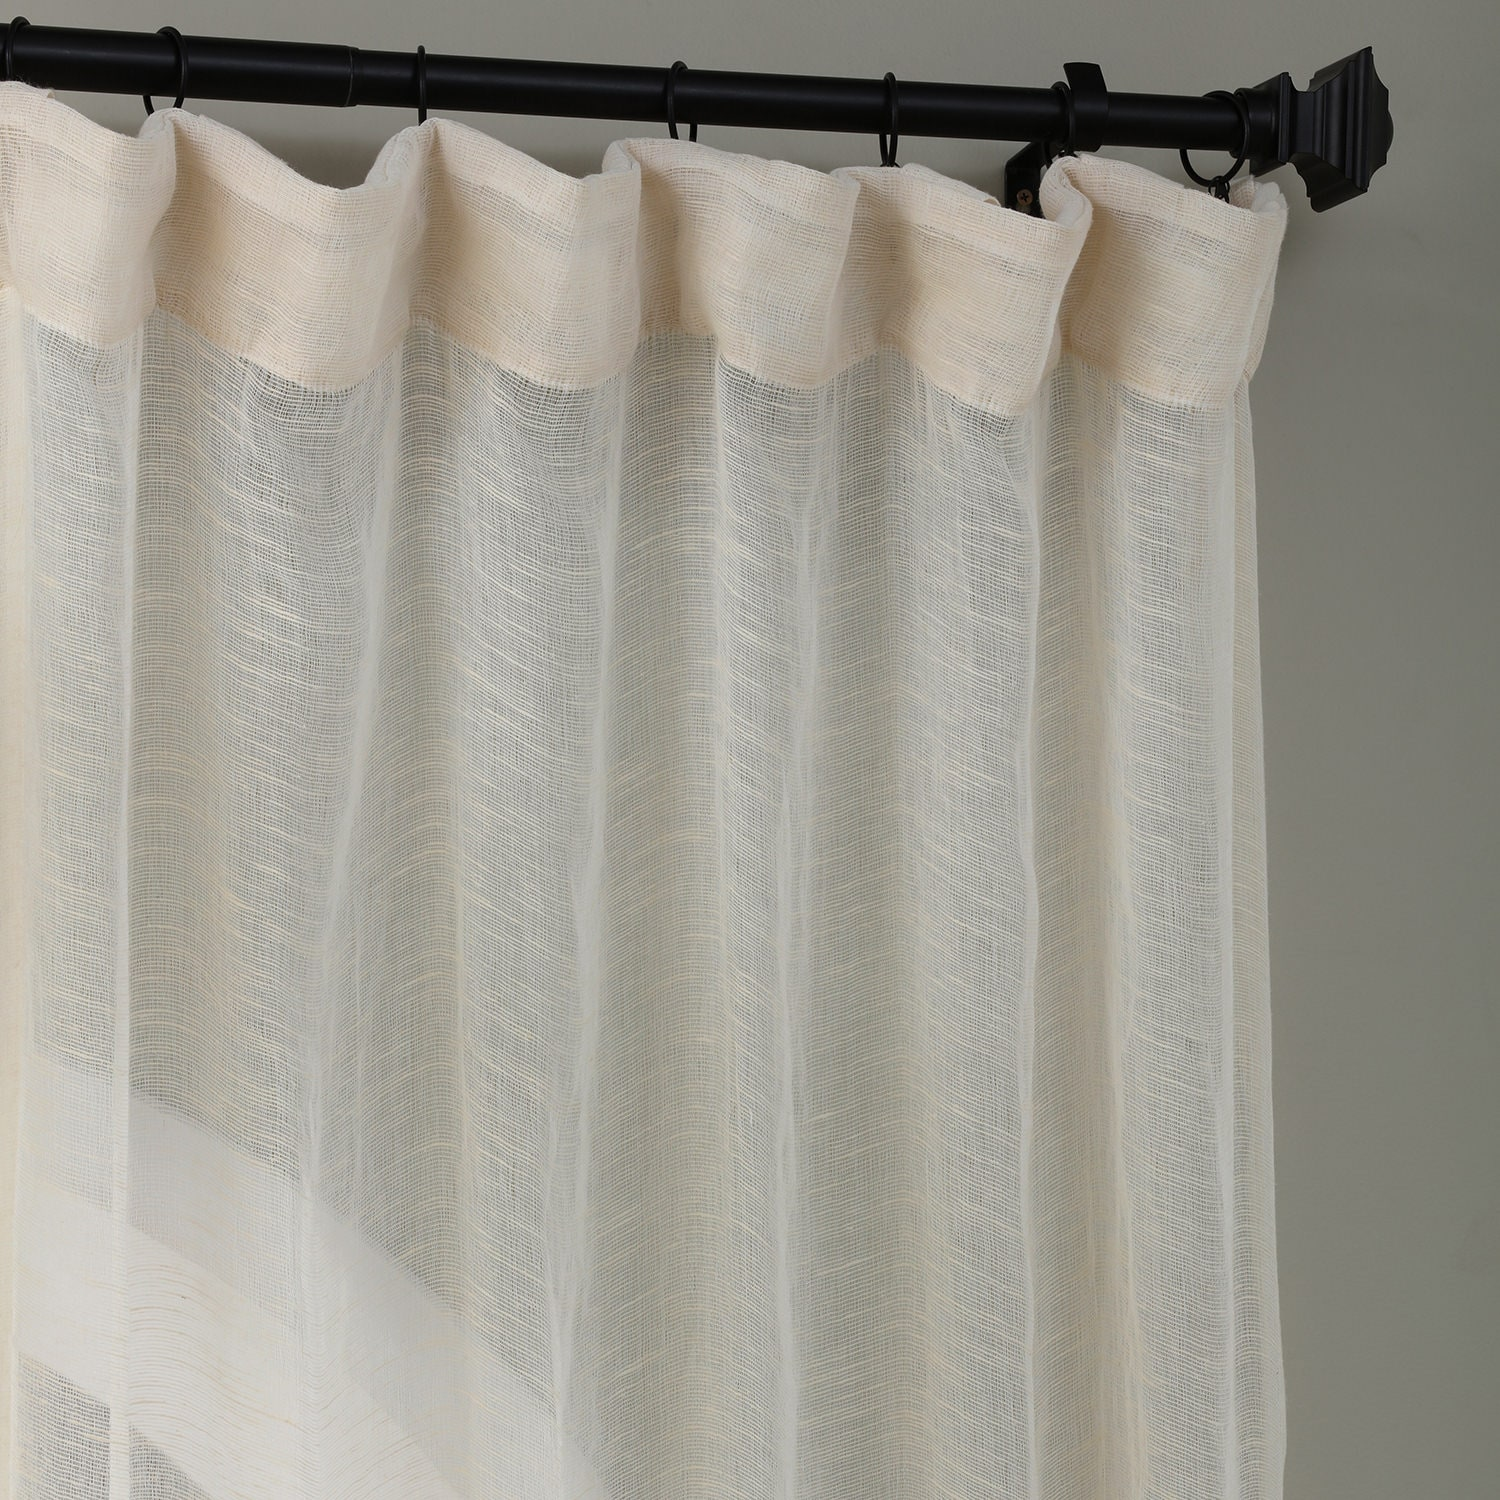 amazing Textured Sheer Curtains Part - 4: Open Weave Cream Linen Sheer Curtain